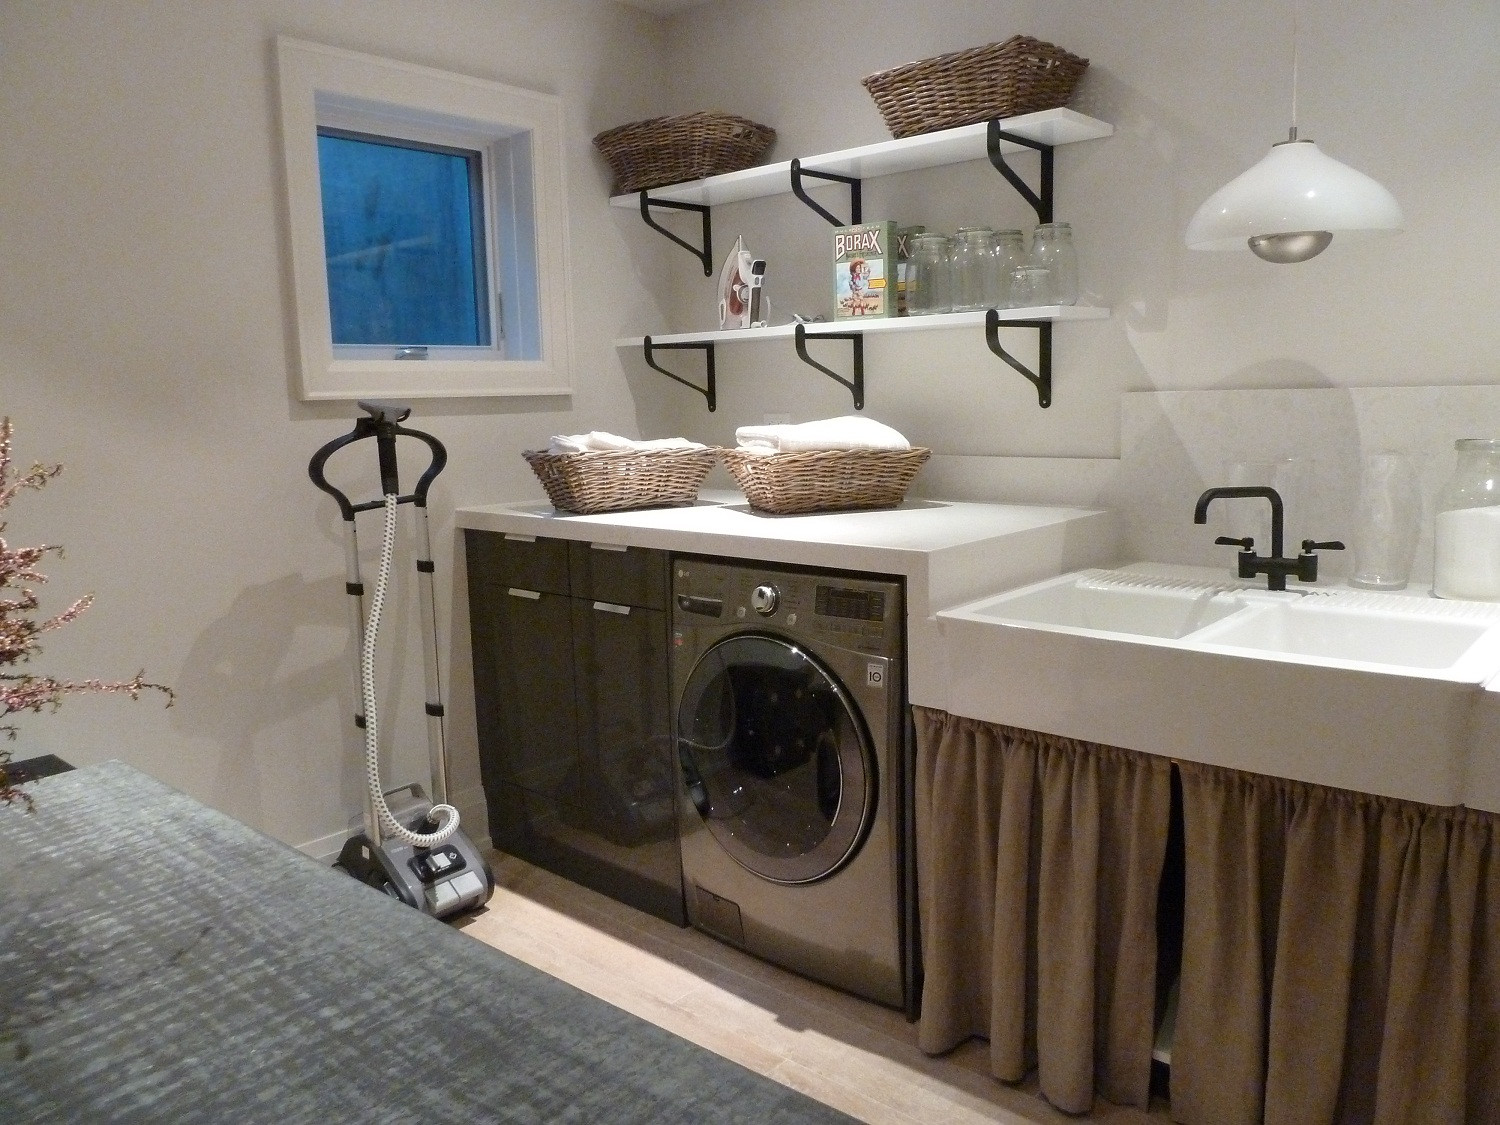 Best ideas about Basement Laundry Room Ideas . Save or Pin 22 Basement Laundry Room Ideas to Try in Your House Now.